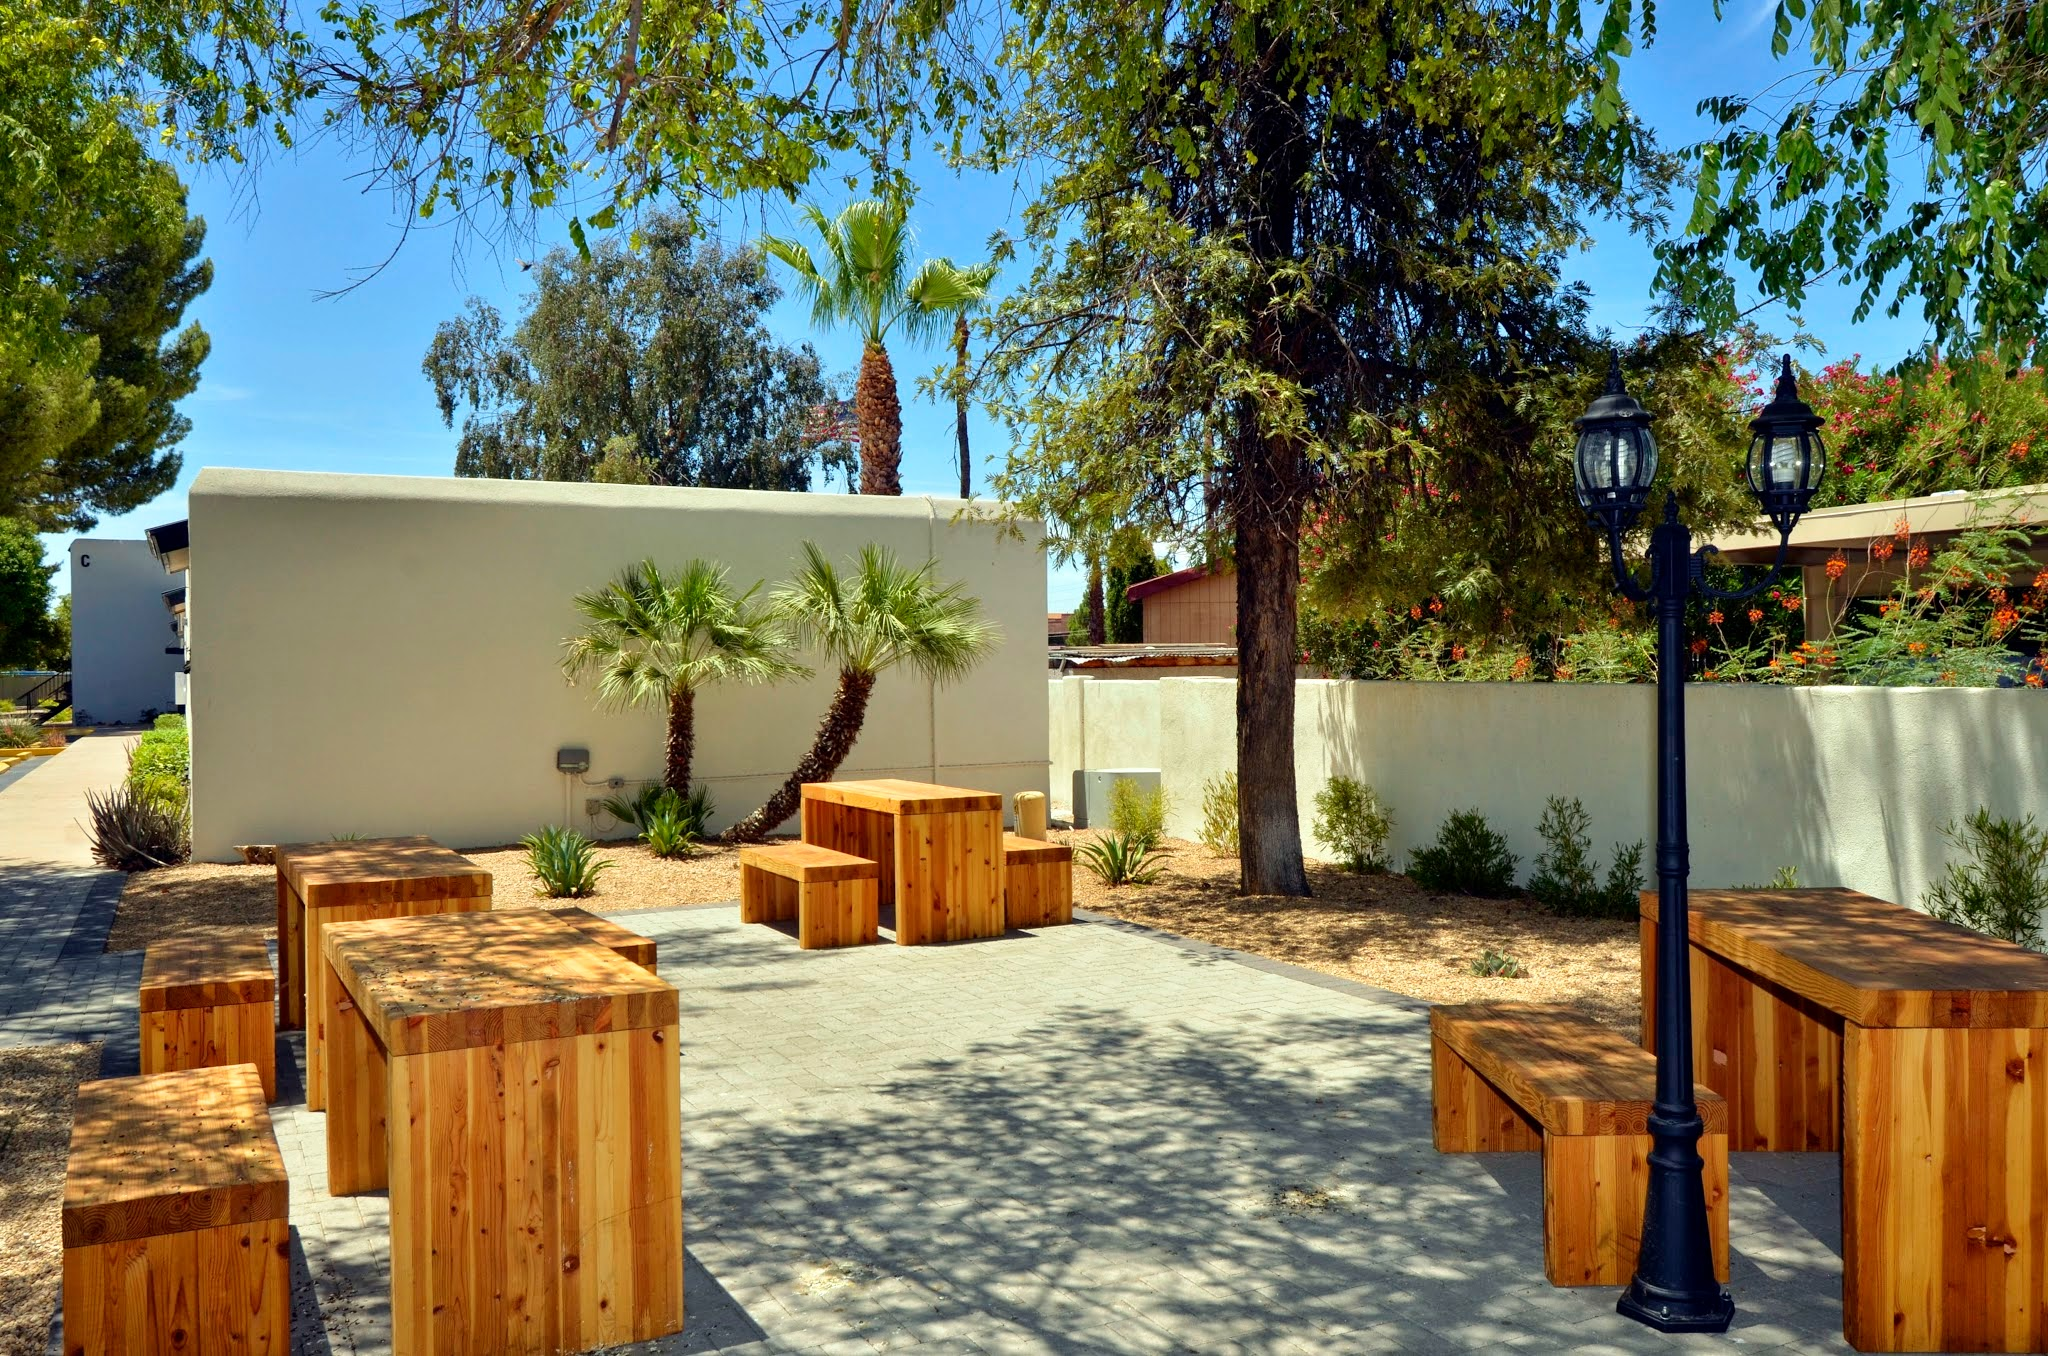 Charming Courtyard at The Winfield of Scottsdale Apartments in Scottsdale, Arizona